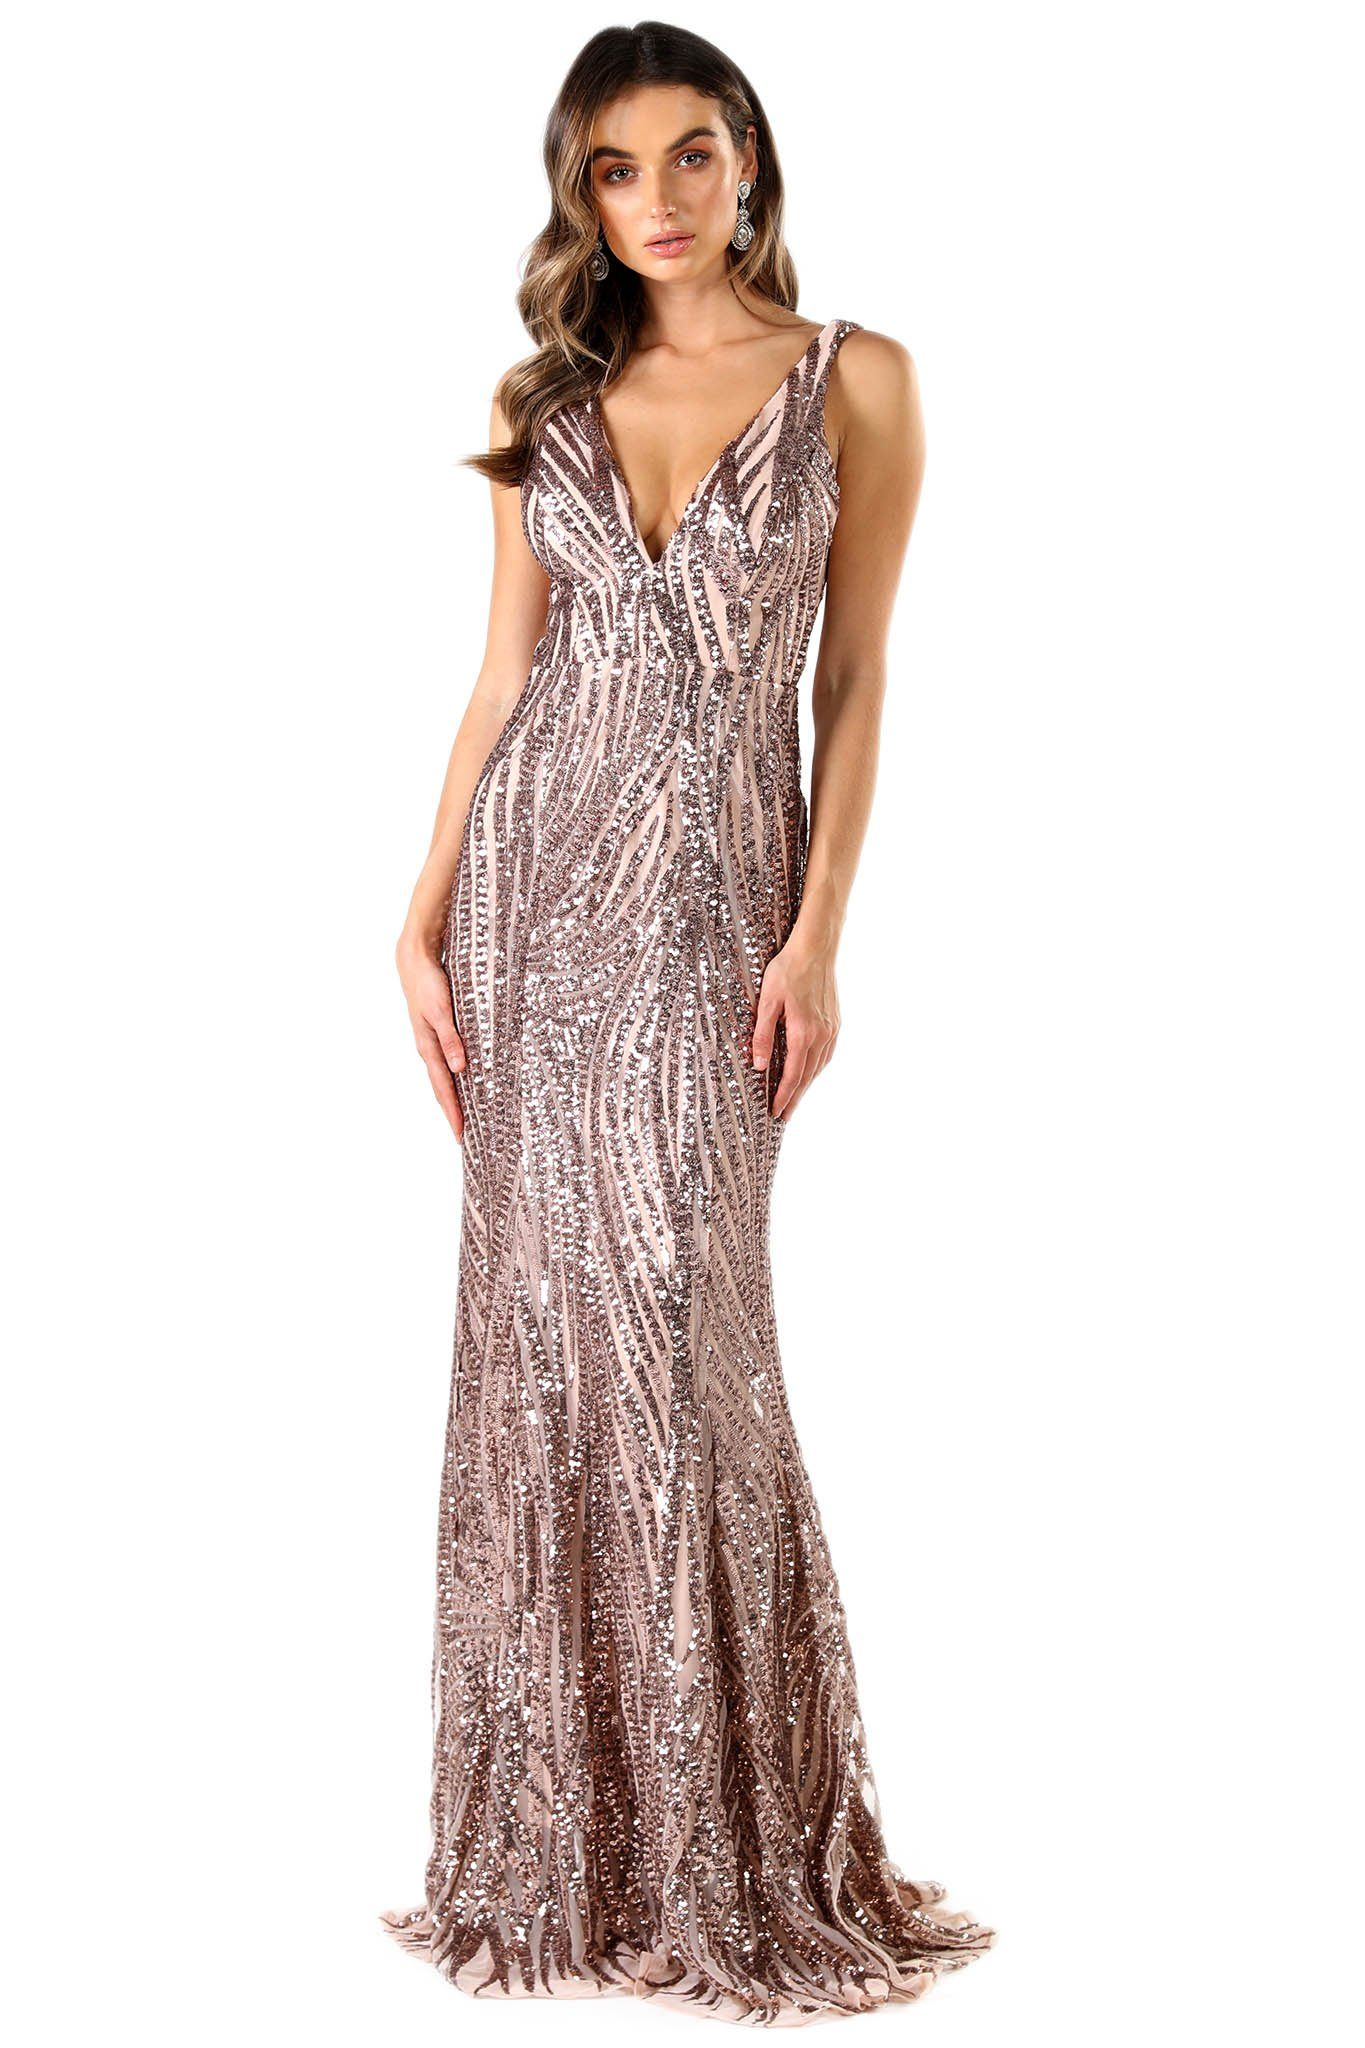 Rose Gold Floor Length Formal Sequin Gown with Wavy Stripes of Embroidered Rose Gold Sequins on Blush Pink Lining, V Plunge Neckline and Open Back Design